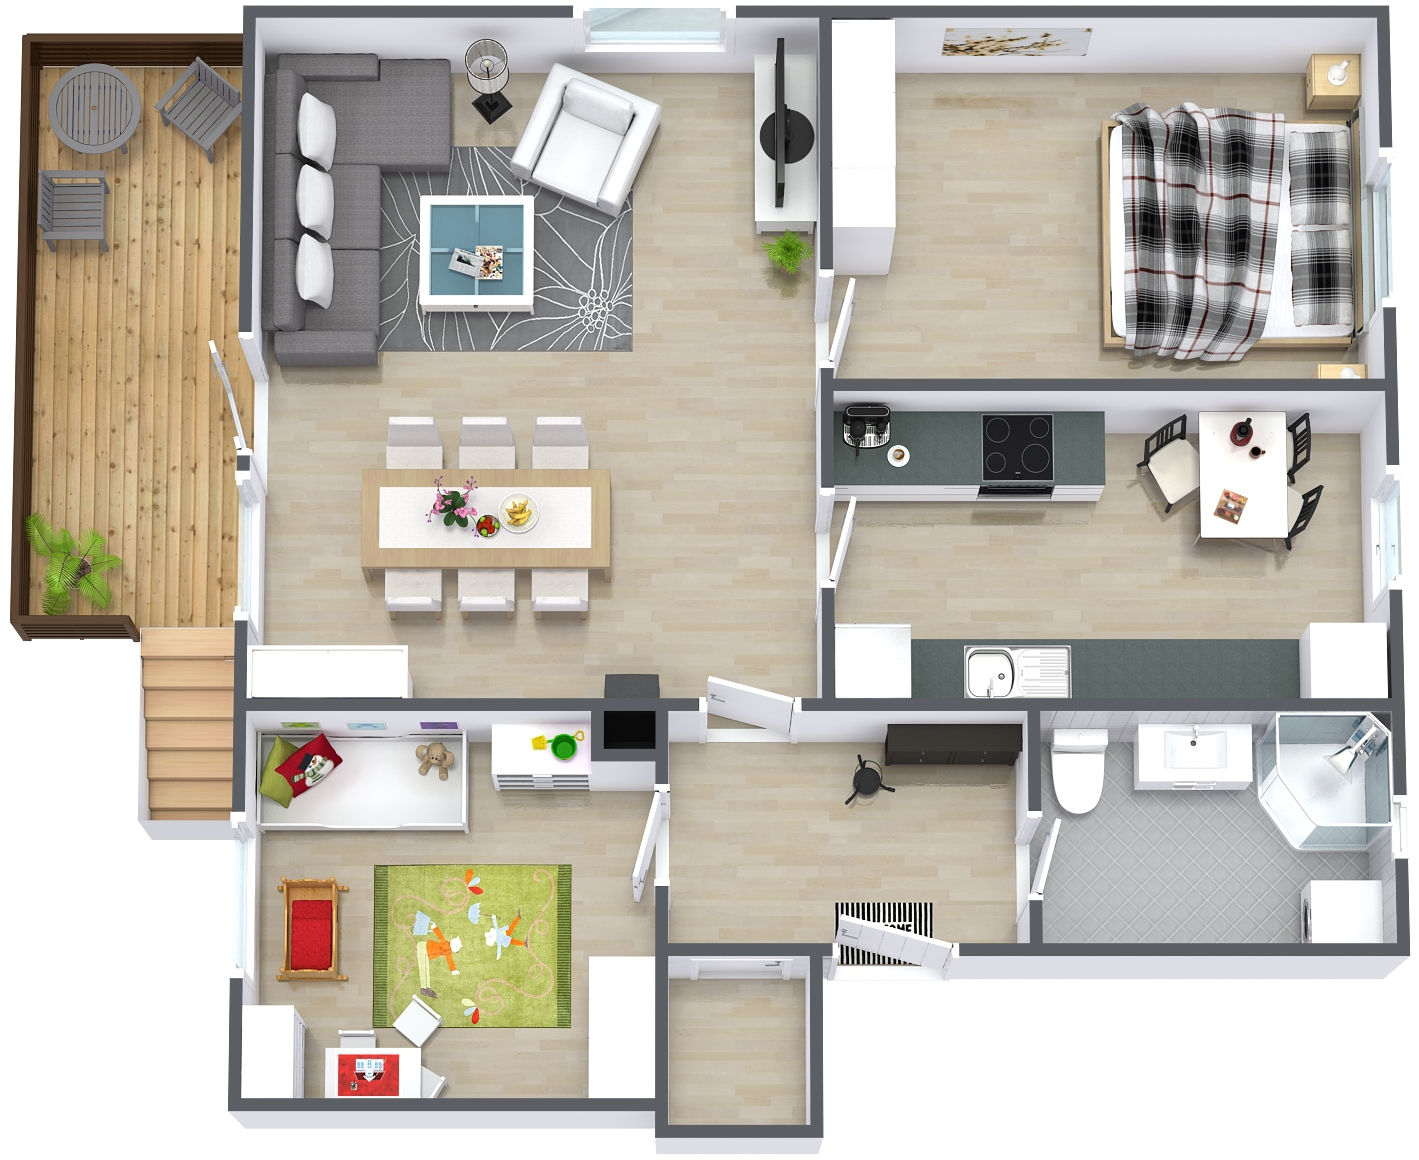 Warranty home inspection - floor plan